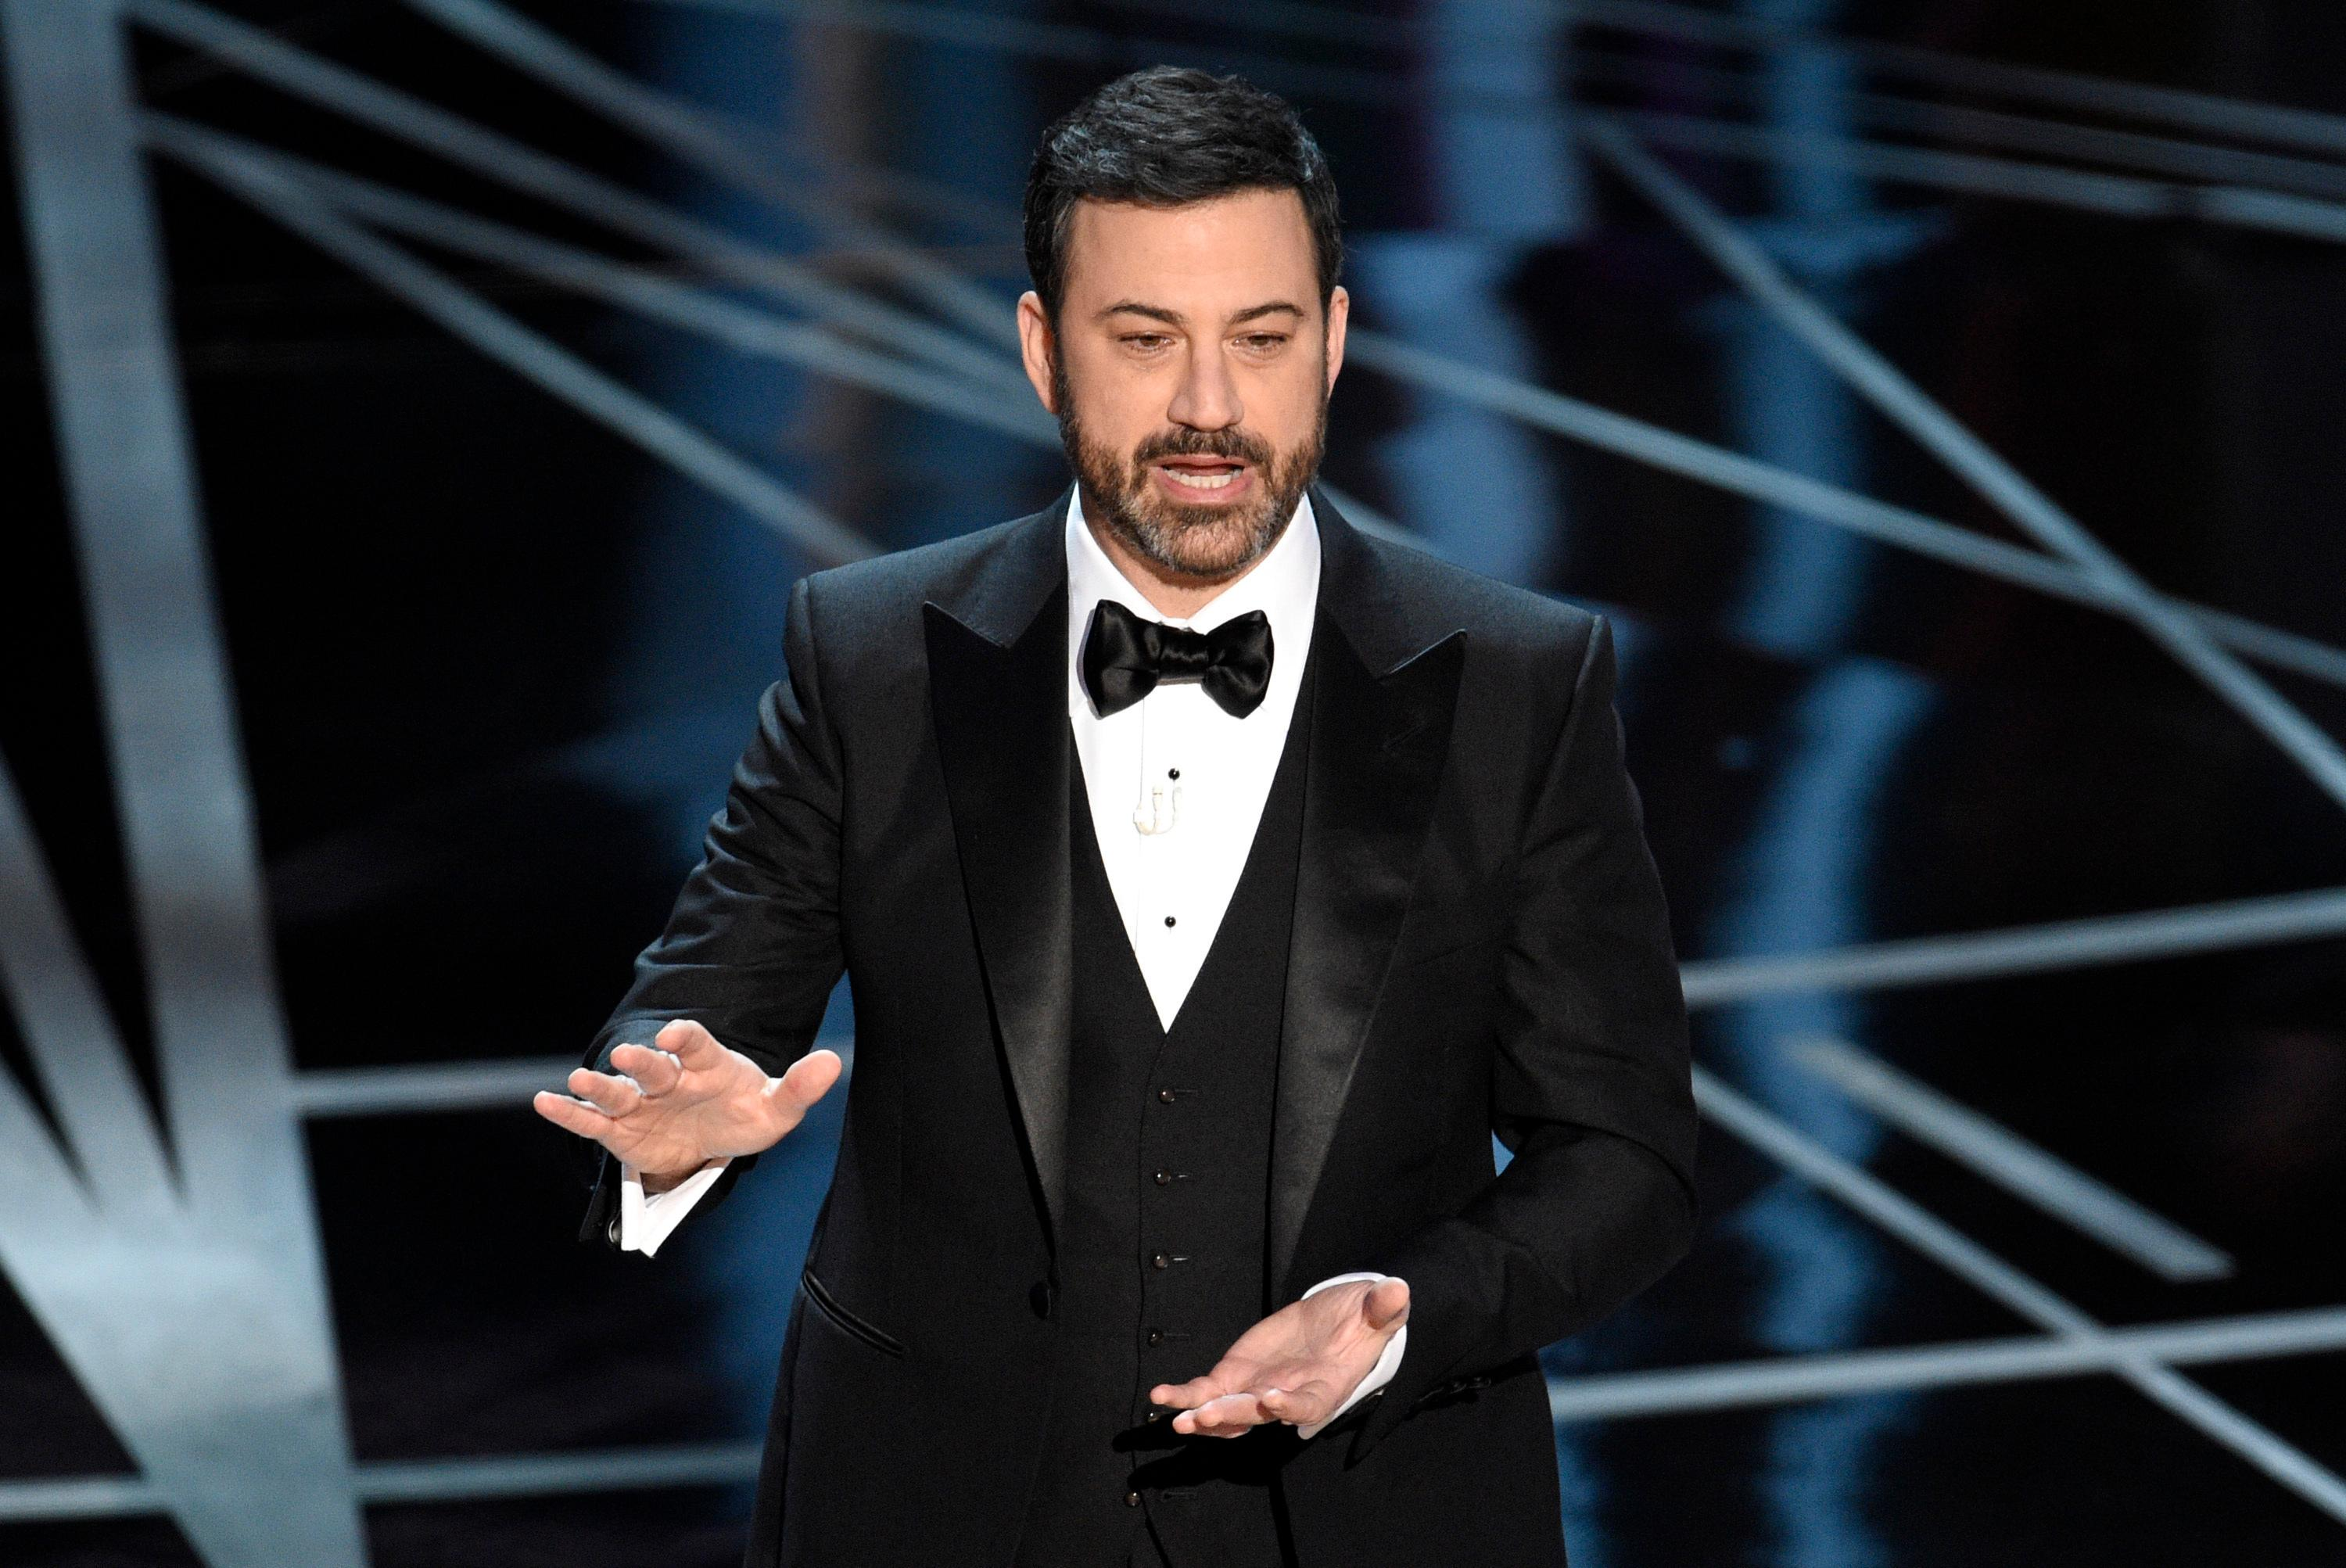 FILE - In this Feb. 26, 2017 file photo, host Jimmy Kimmel appears at the Oscars in Los Angeles. (Photo by Chris Pizzello/Invision/AP, File)